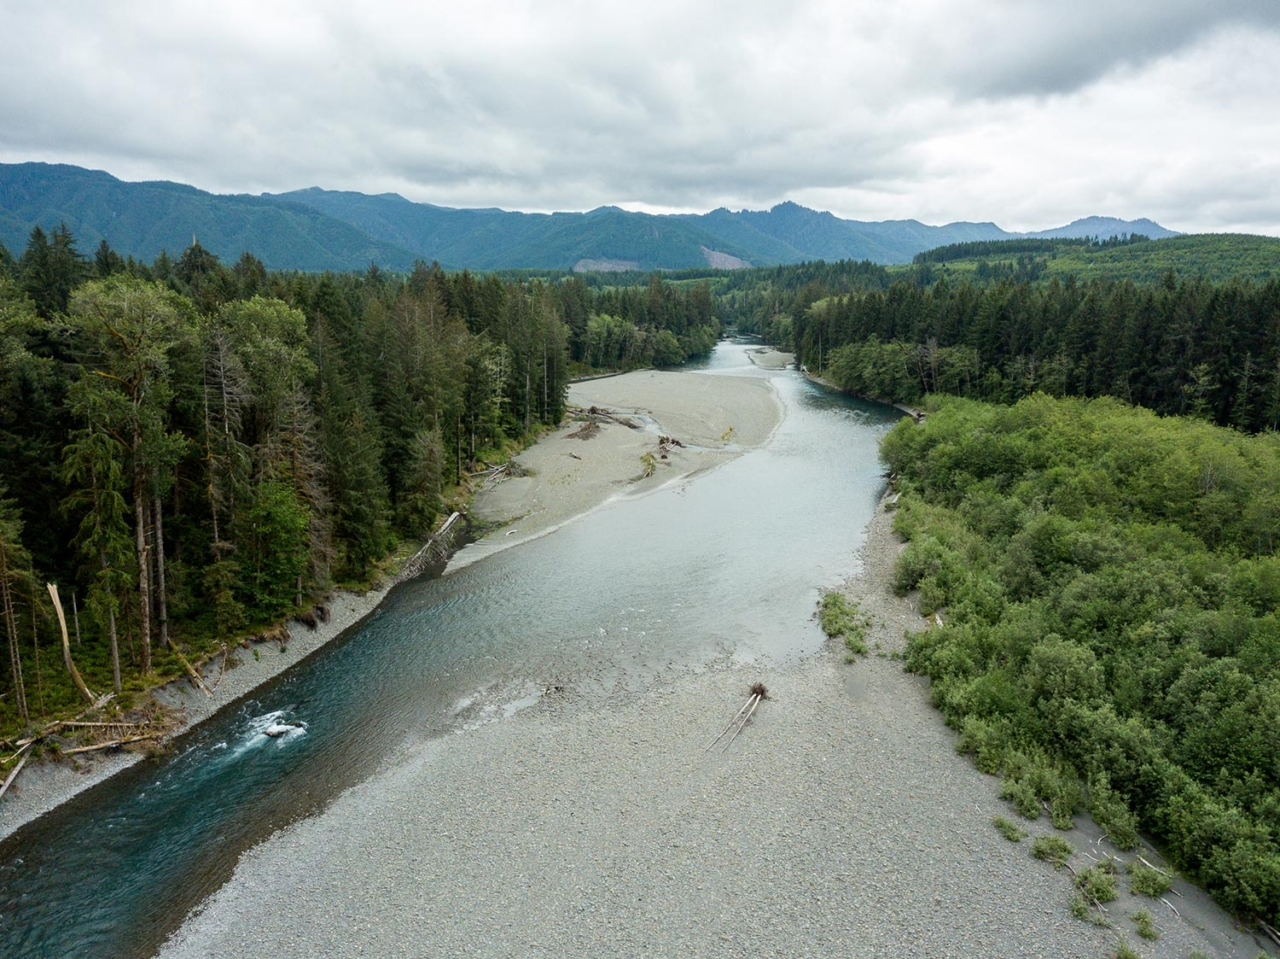 A healthy river will do as it pleases, be it flood its banks, reshape its channel or change course completely—meaning the rocky spits that appear to hem it in are actually just open spaces for the water to move. Photo: Colin Wiseman